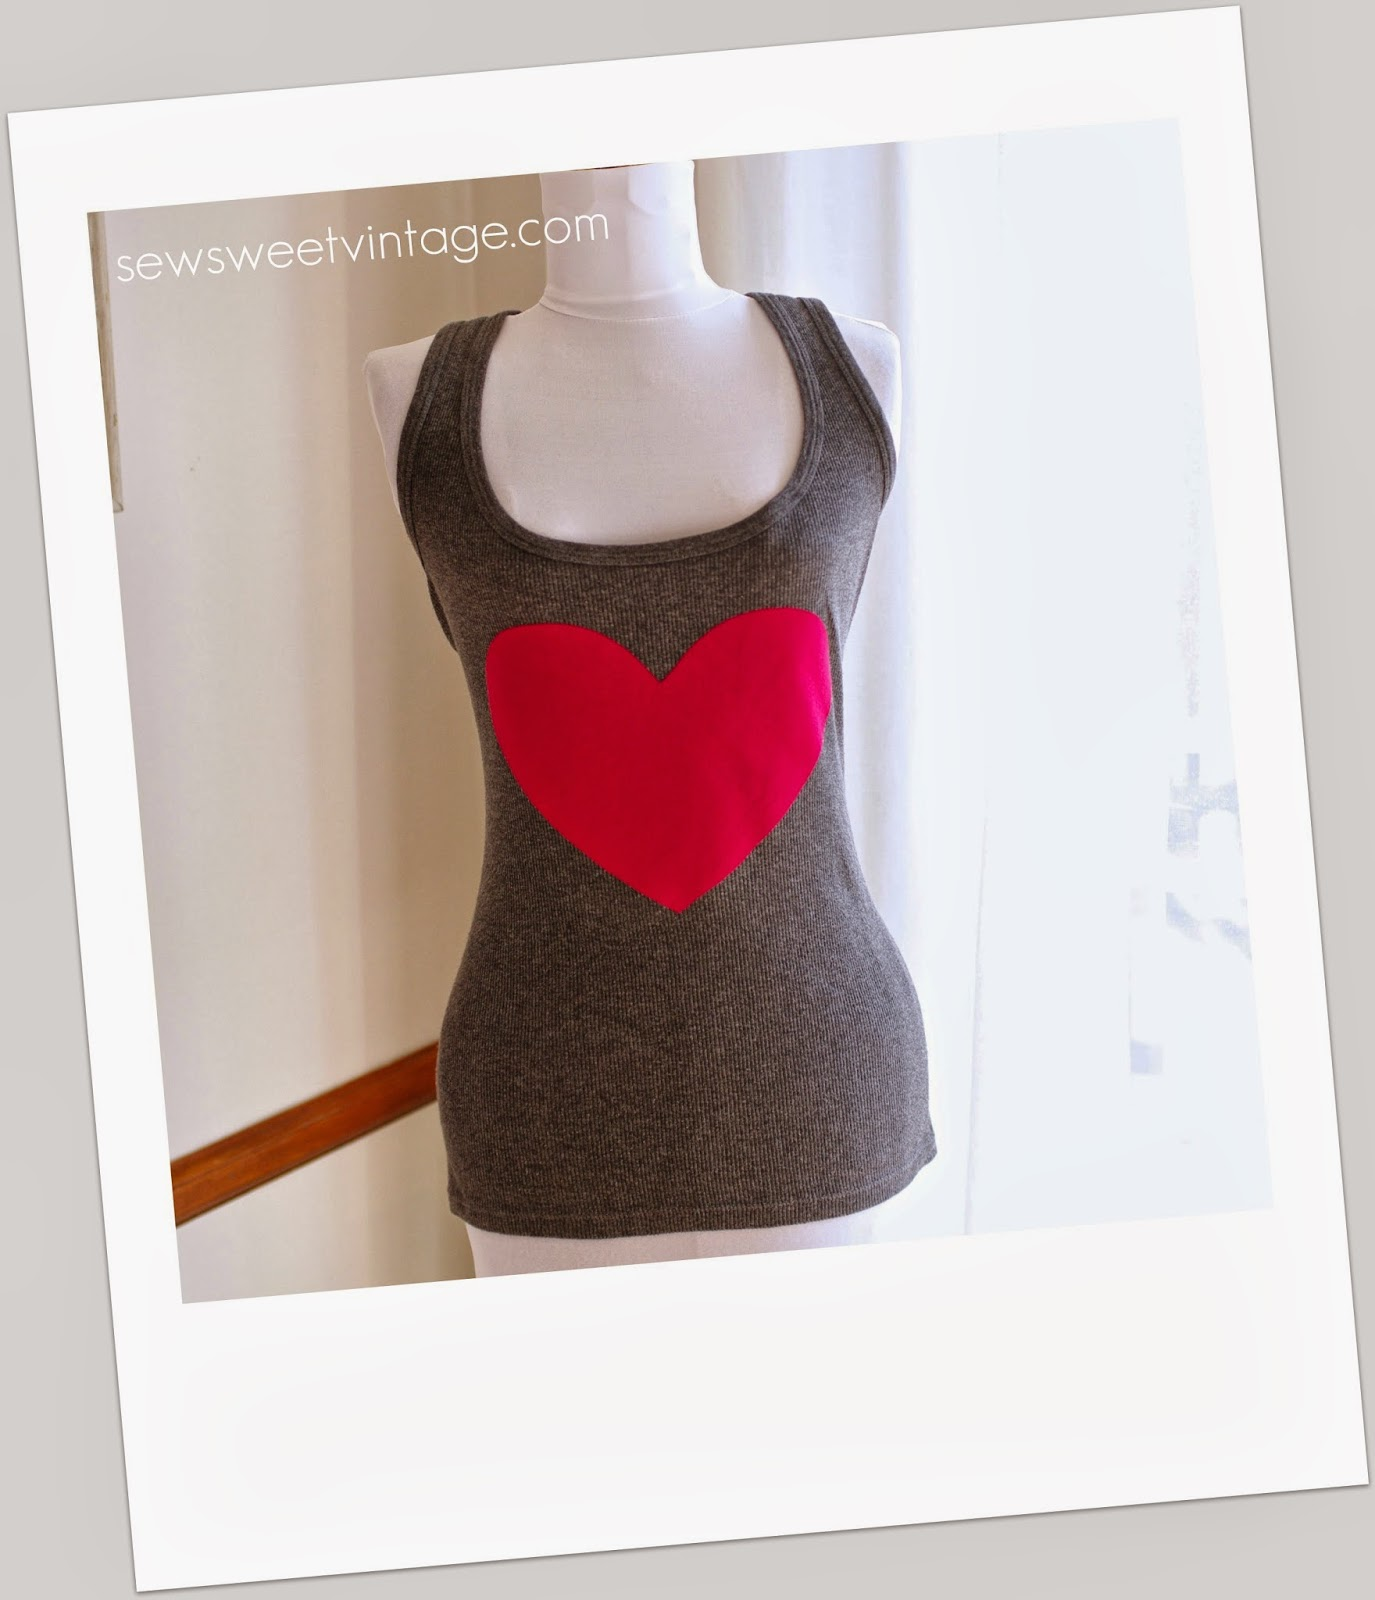 How to make a heart tank top refashion for Valentine's Day by sewsweetvintage.com